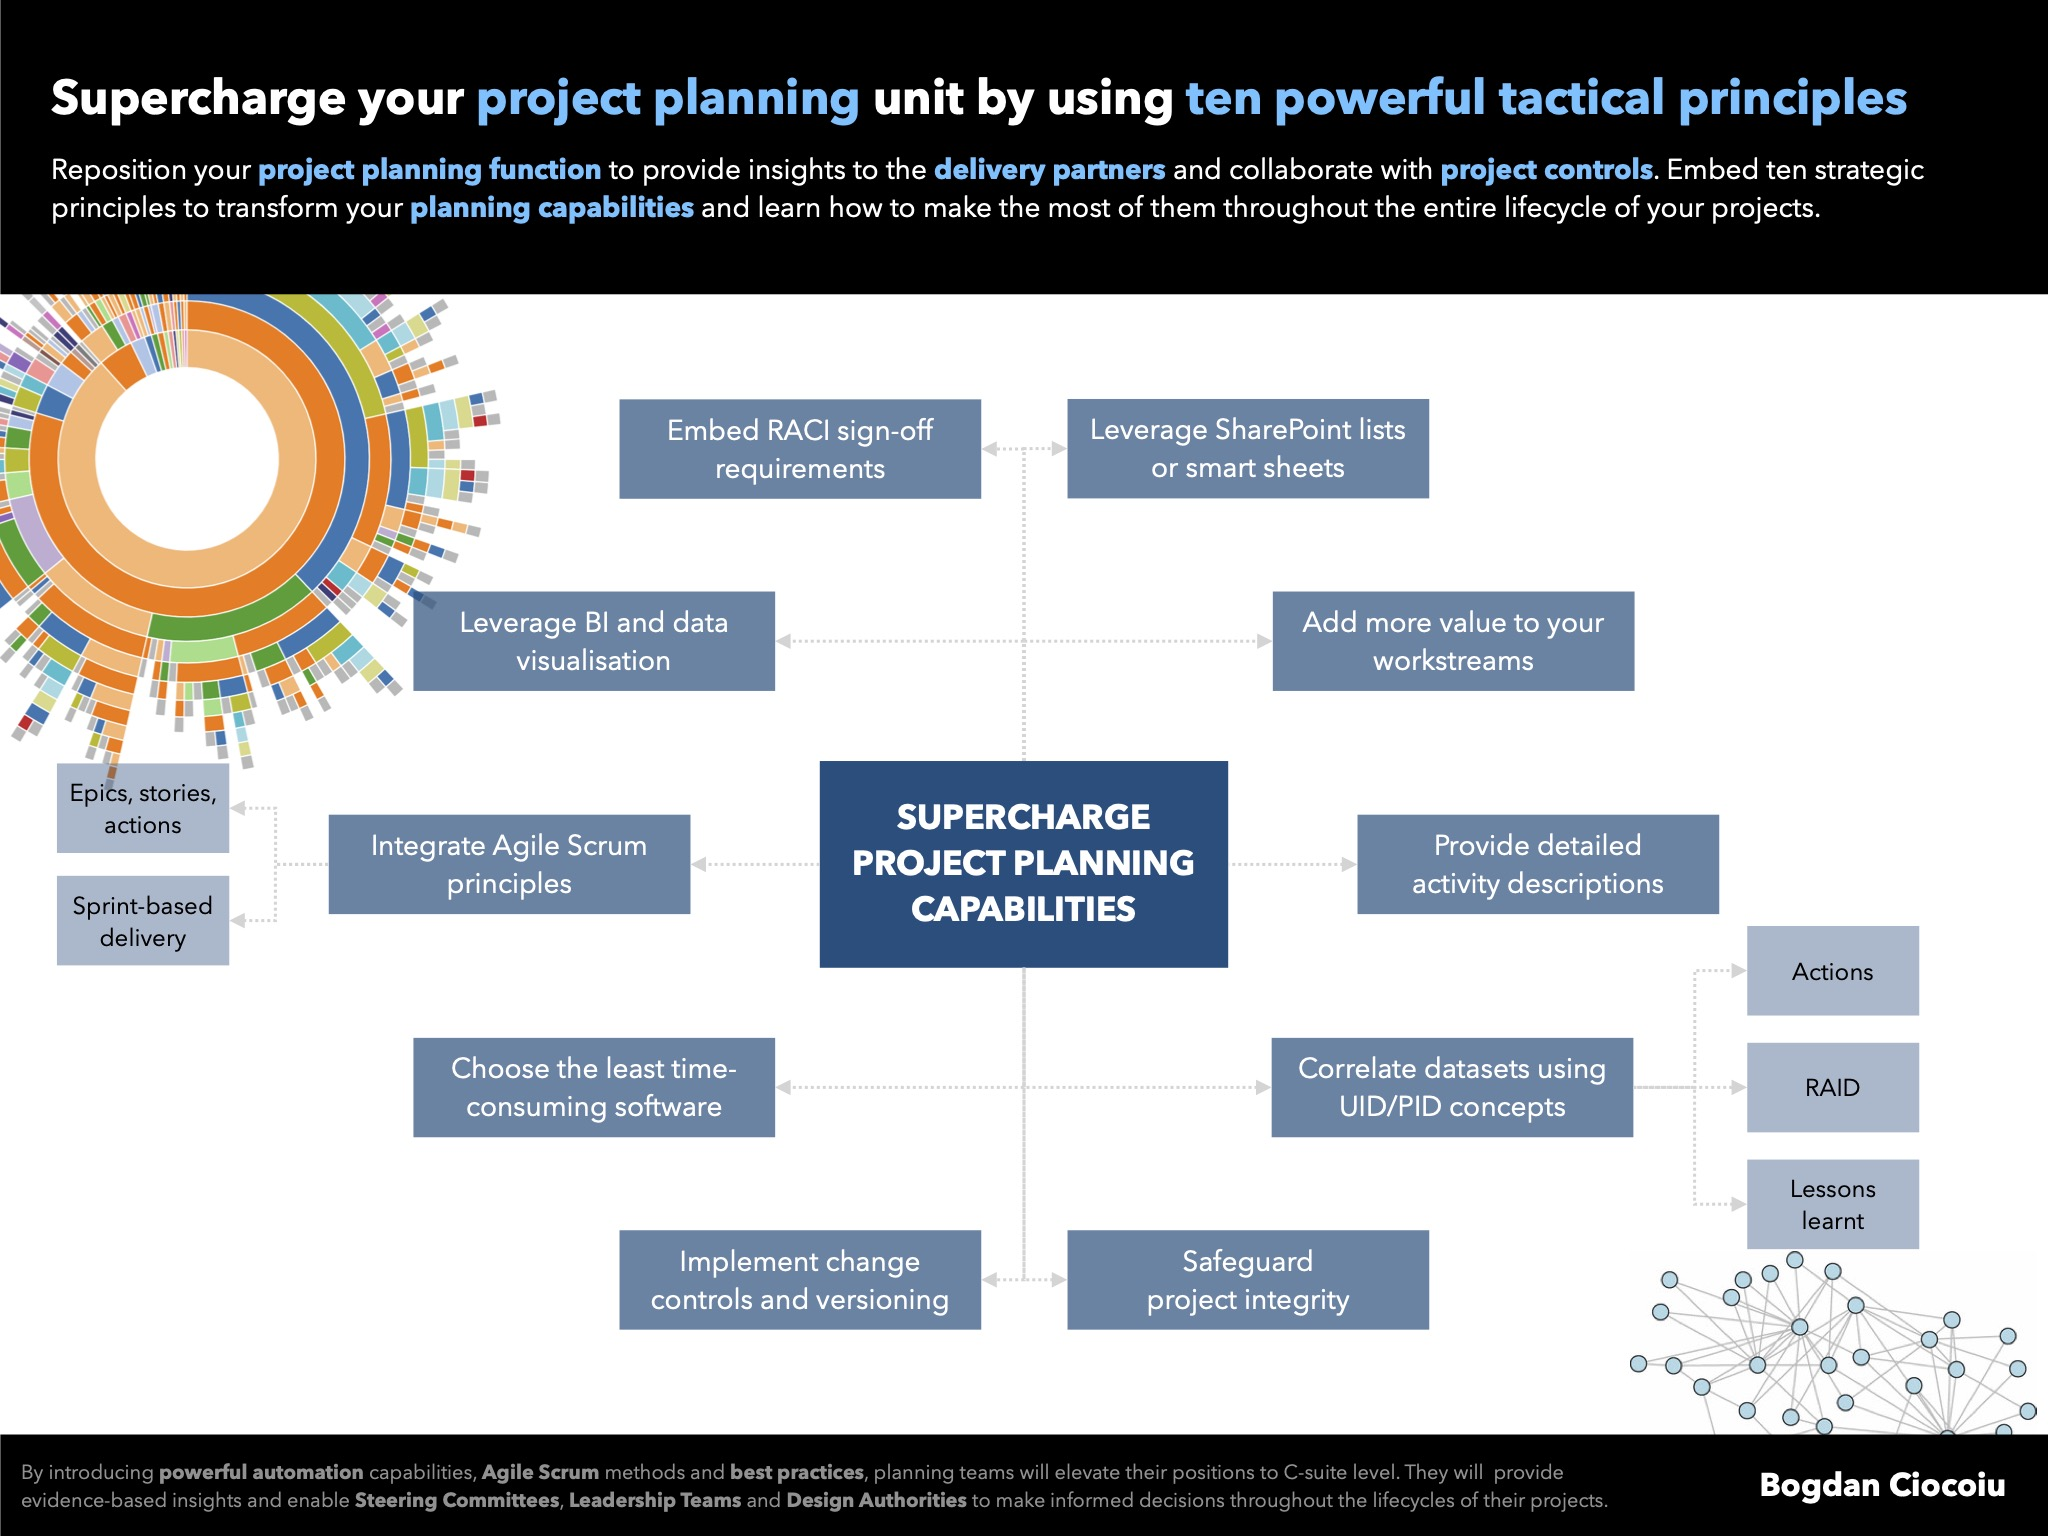 Improve your project planning capabilities by leveraging 10 powerful tactical principles